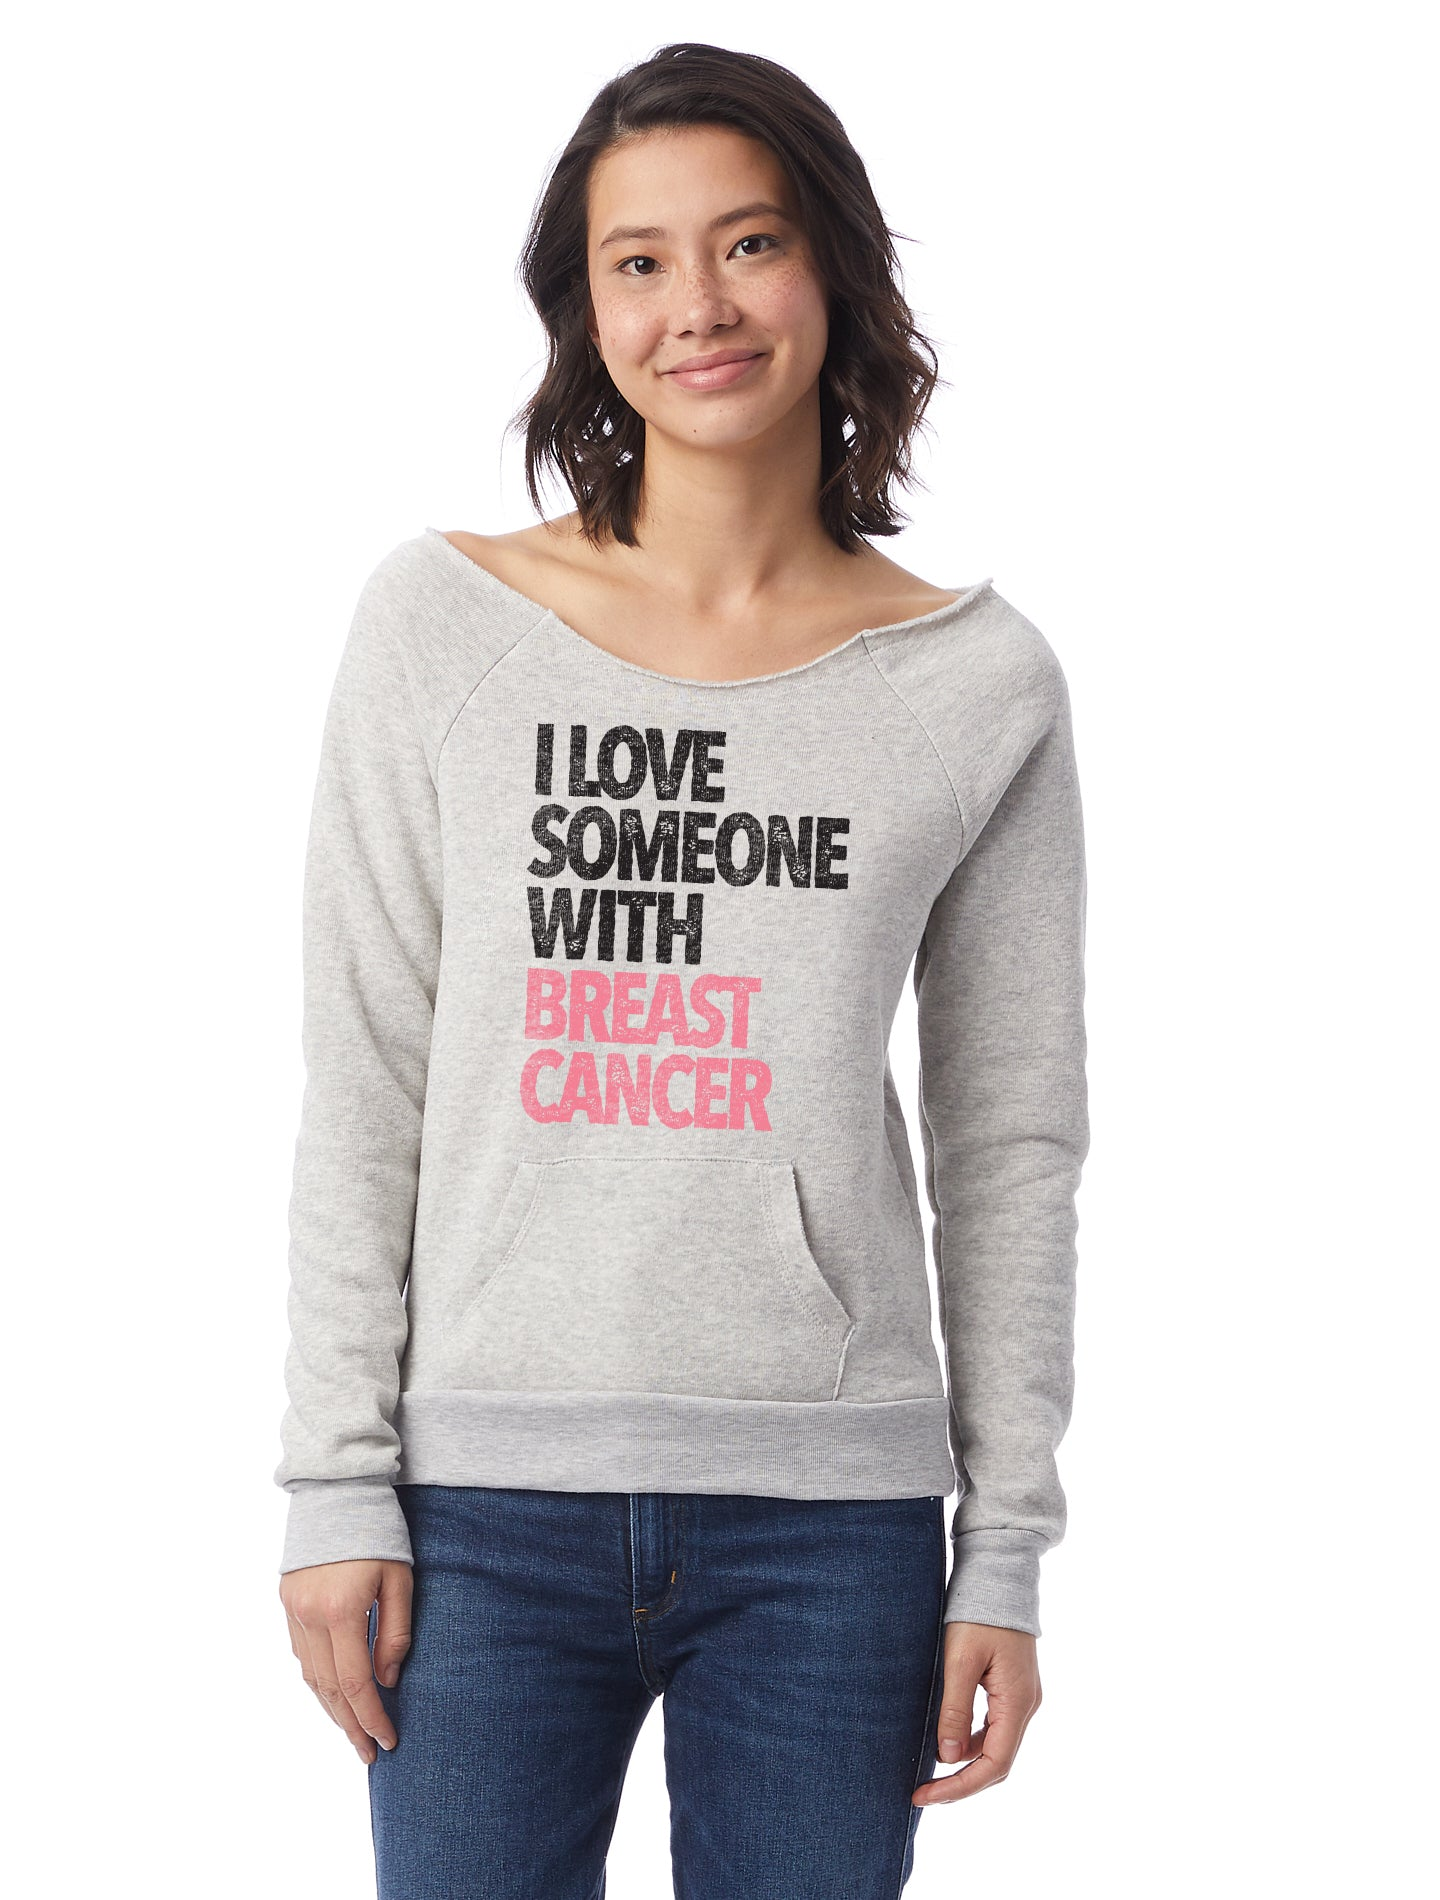 I LOVE SOMEONE WITH BREAST CANCER Womens Triblend Slouchy Sweatshirt